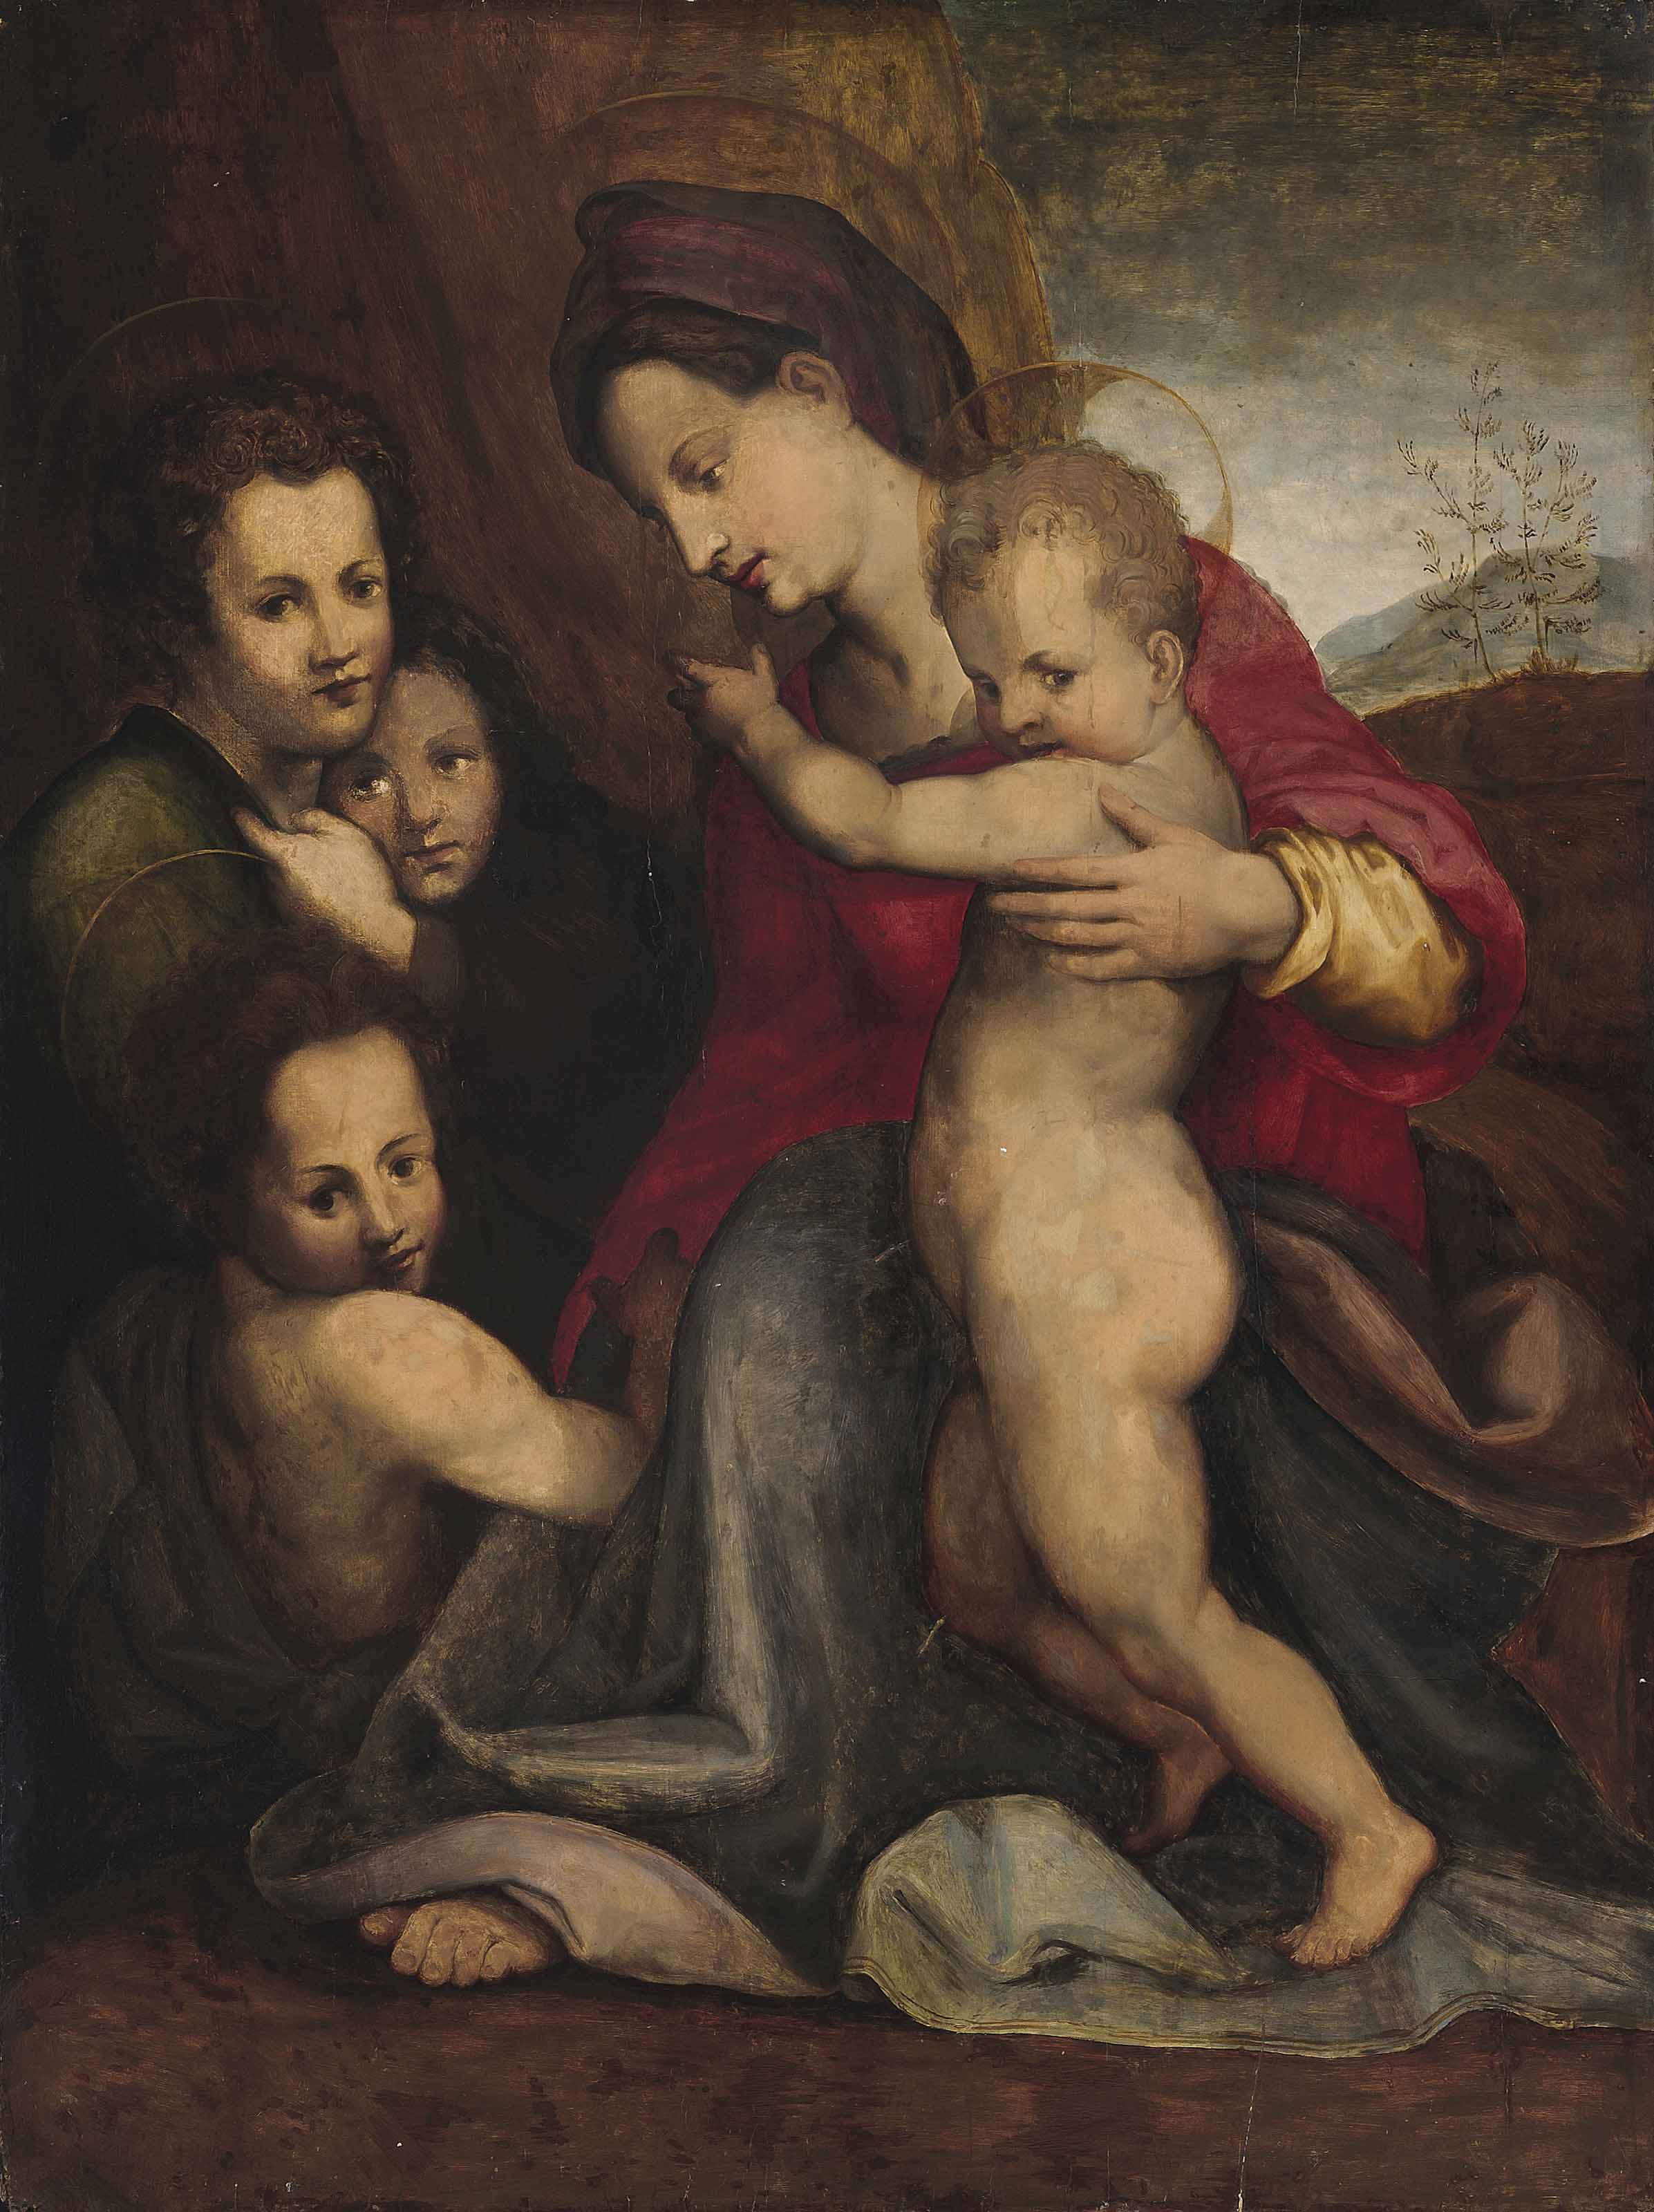 The Madonna and Child with the Infant Saint John the Baptist and two angels